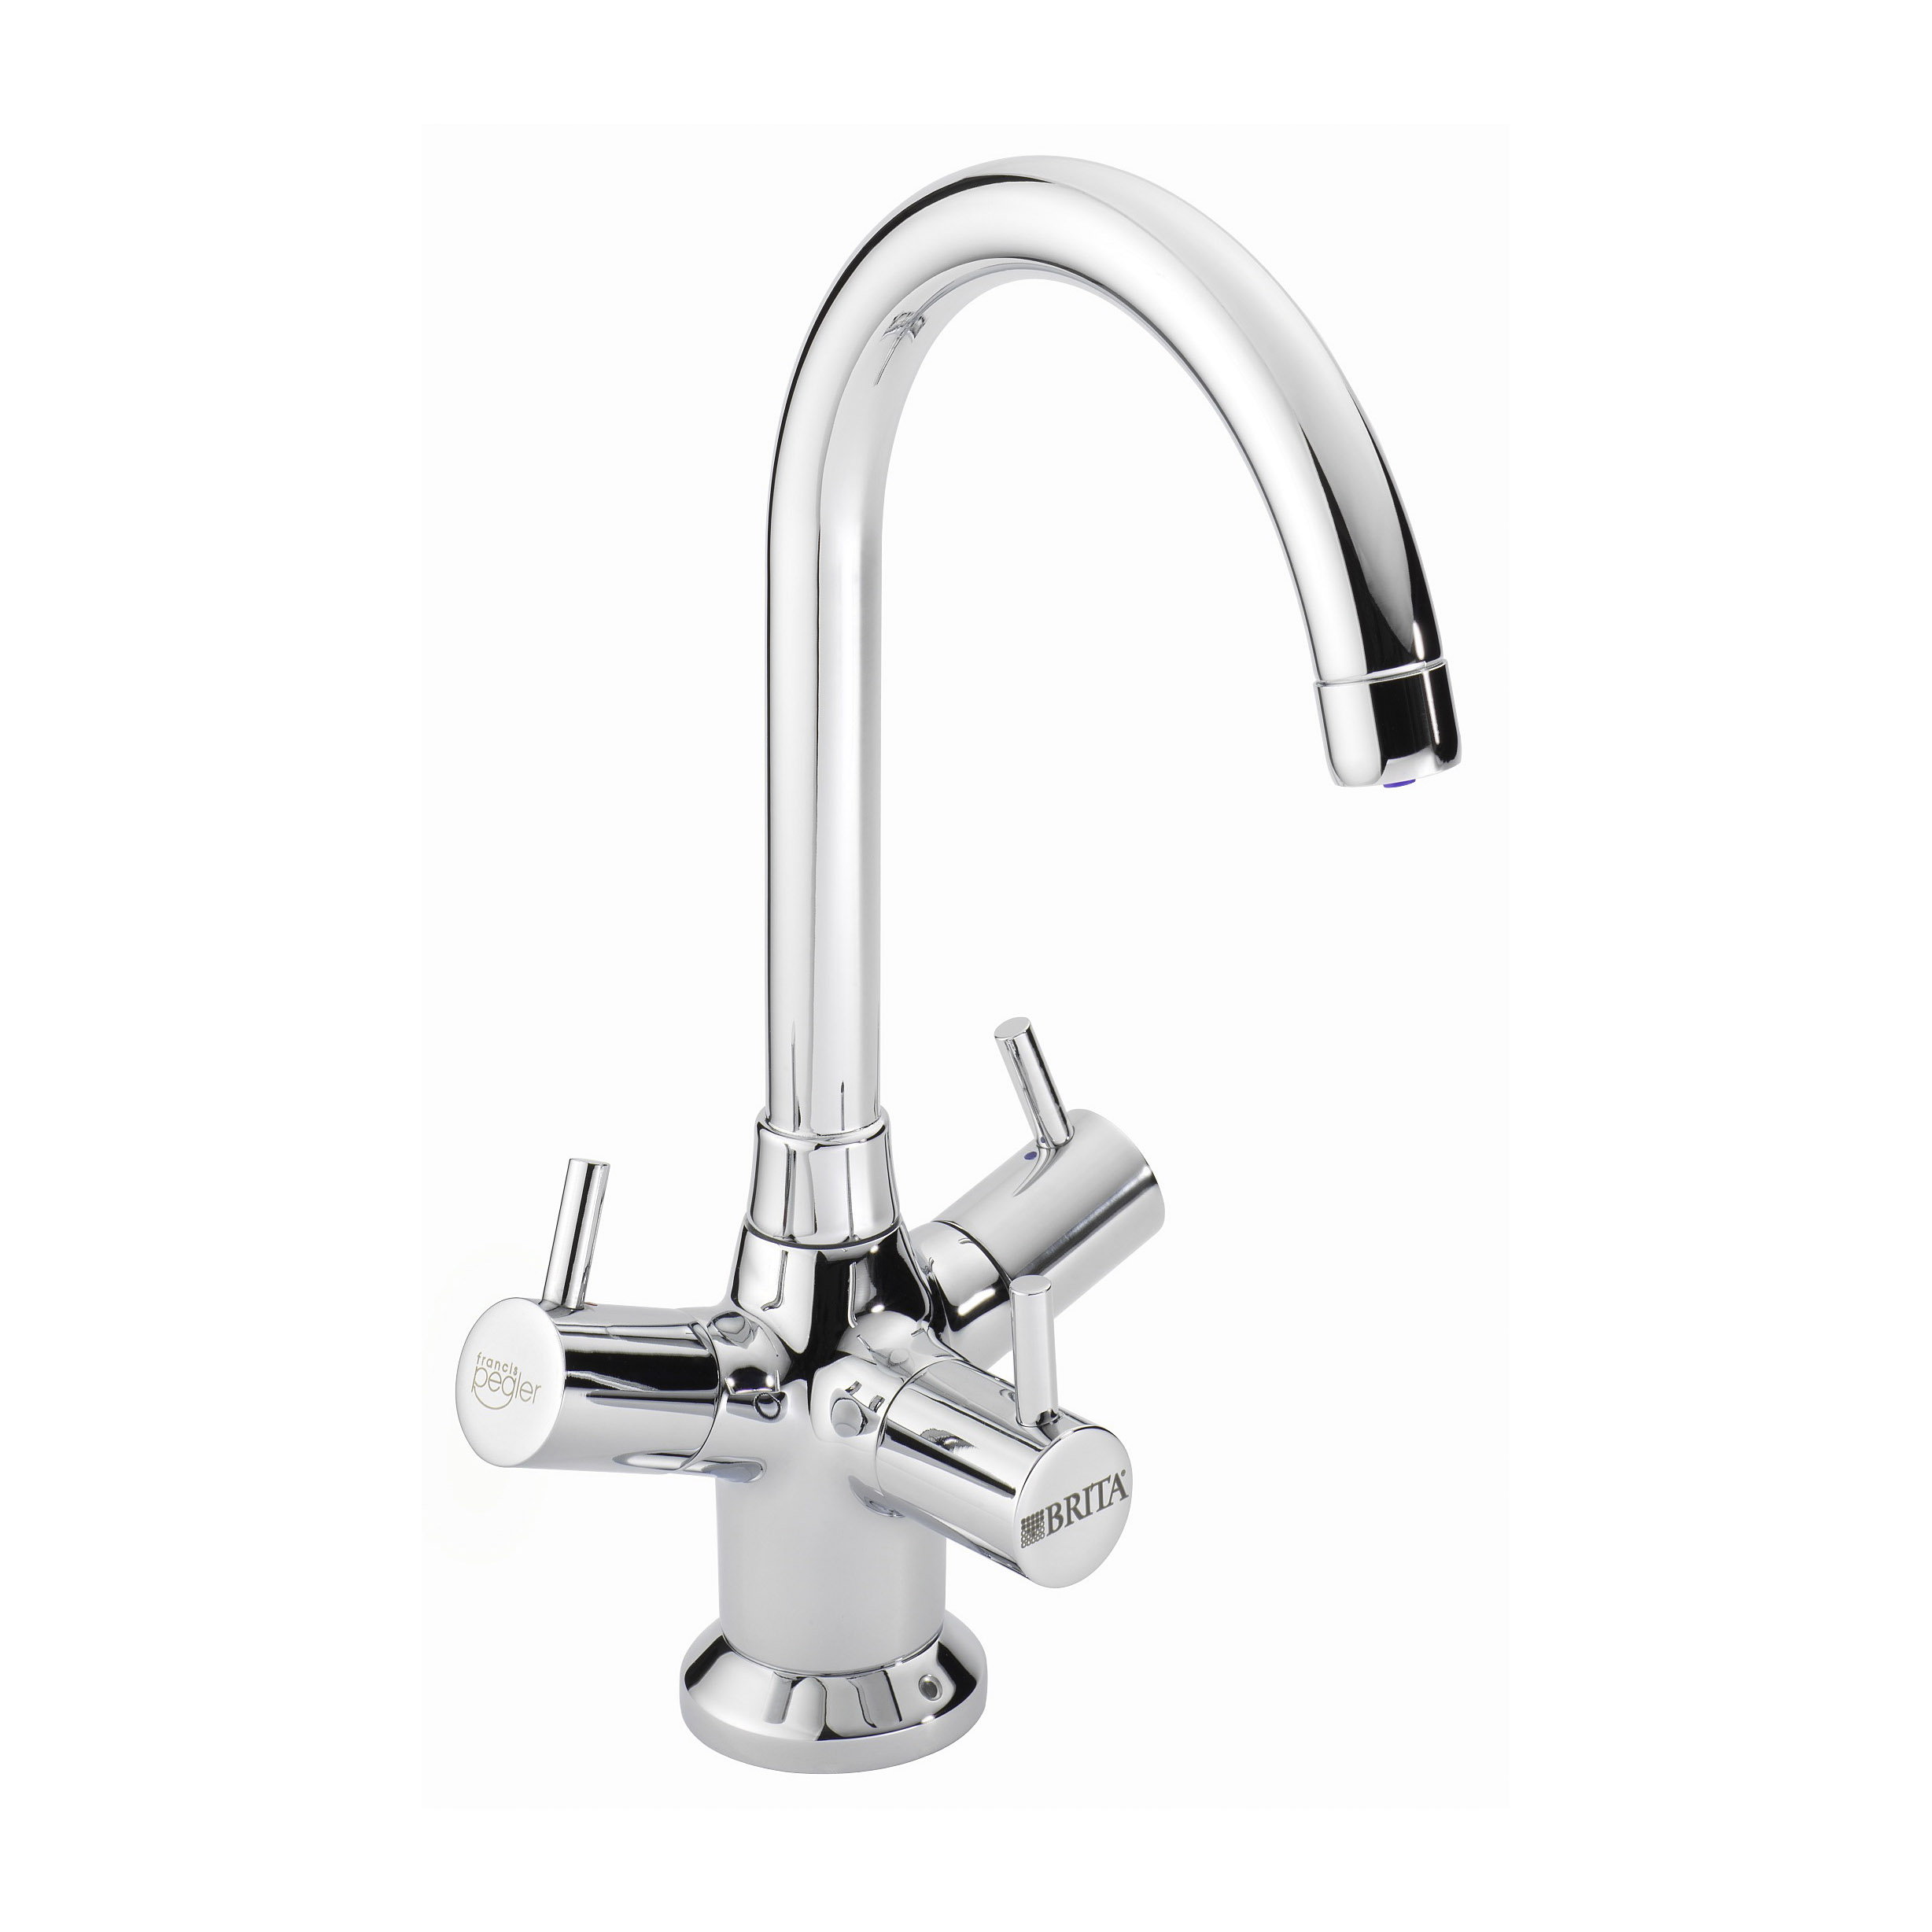 Brita Water Filter Kitchen Taps